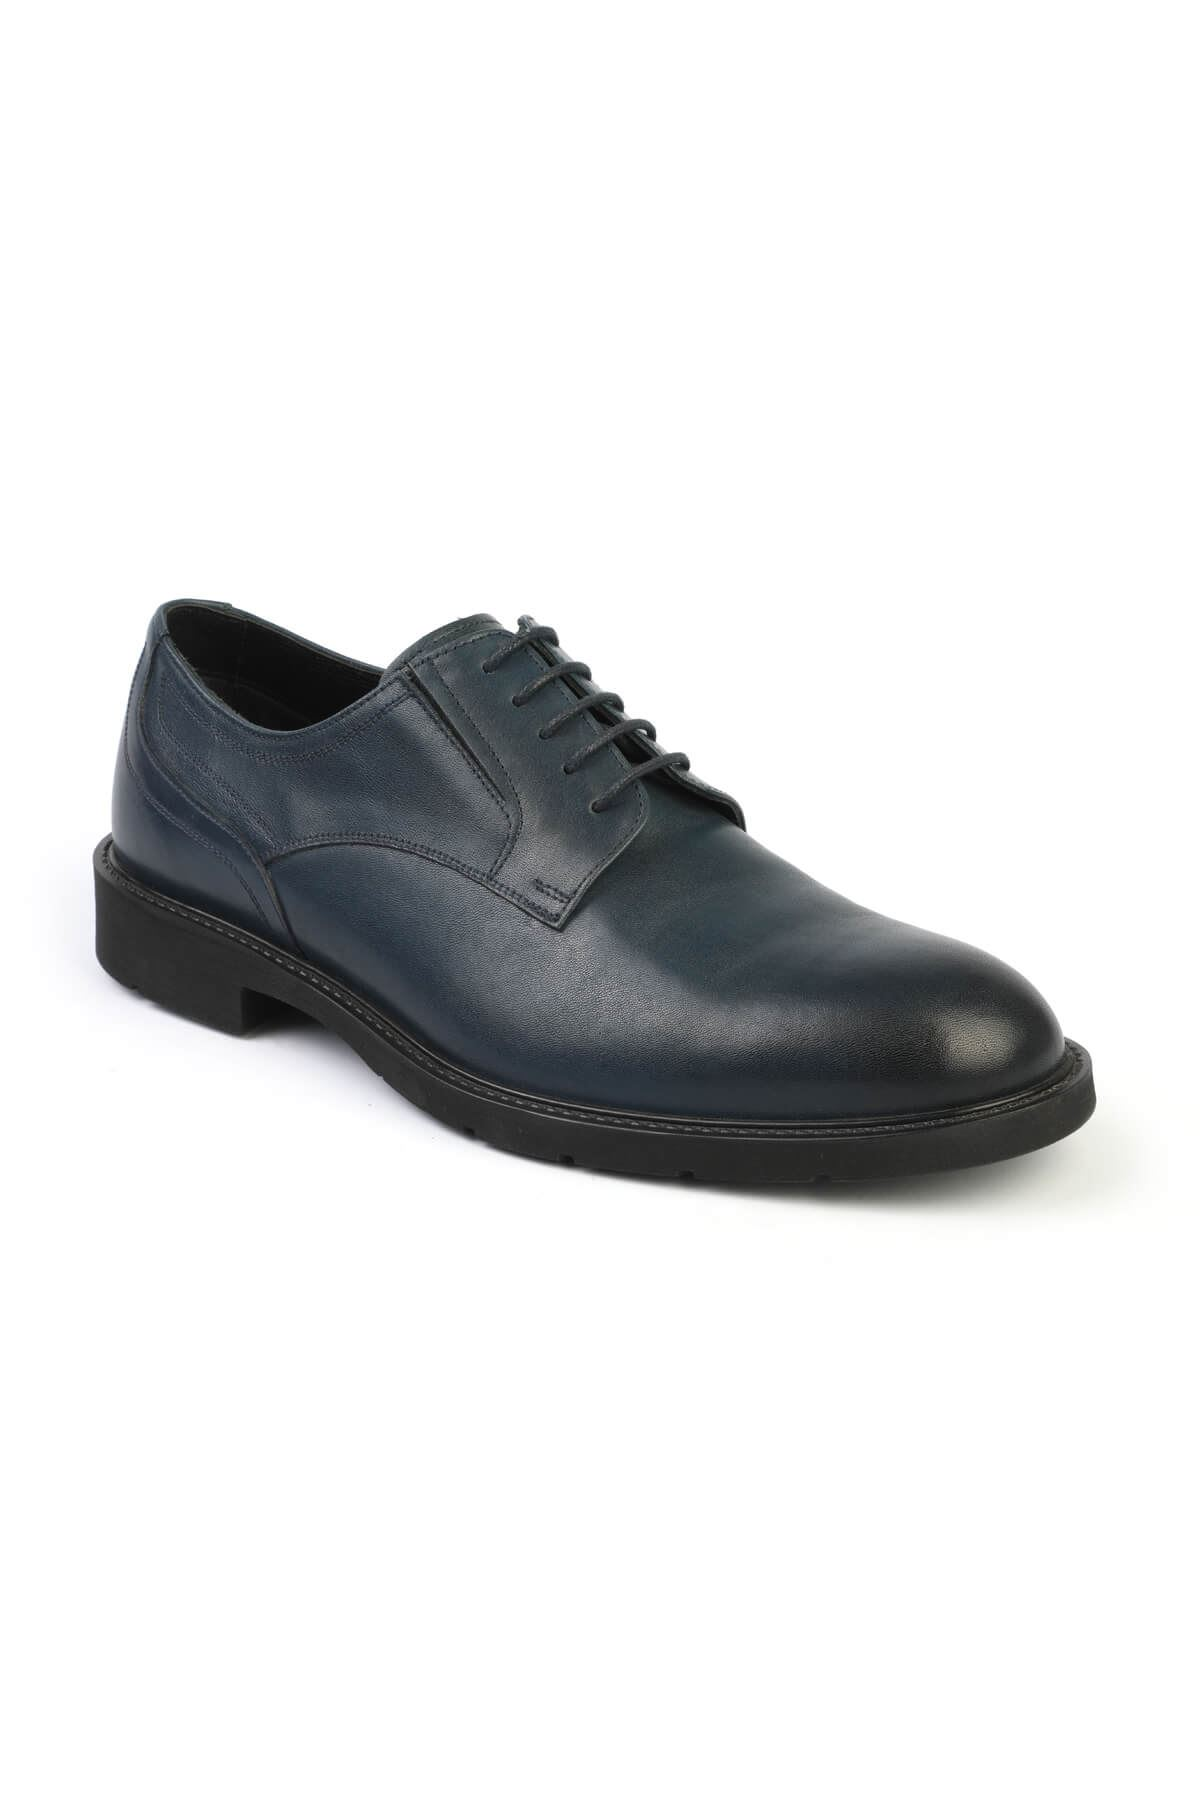 Libero 2922 Navy Blue Casual Shoes